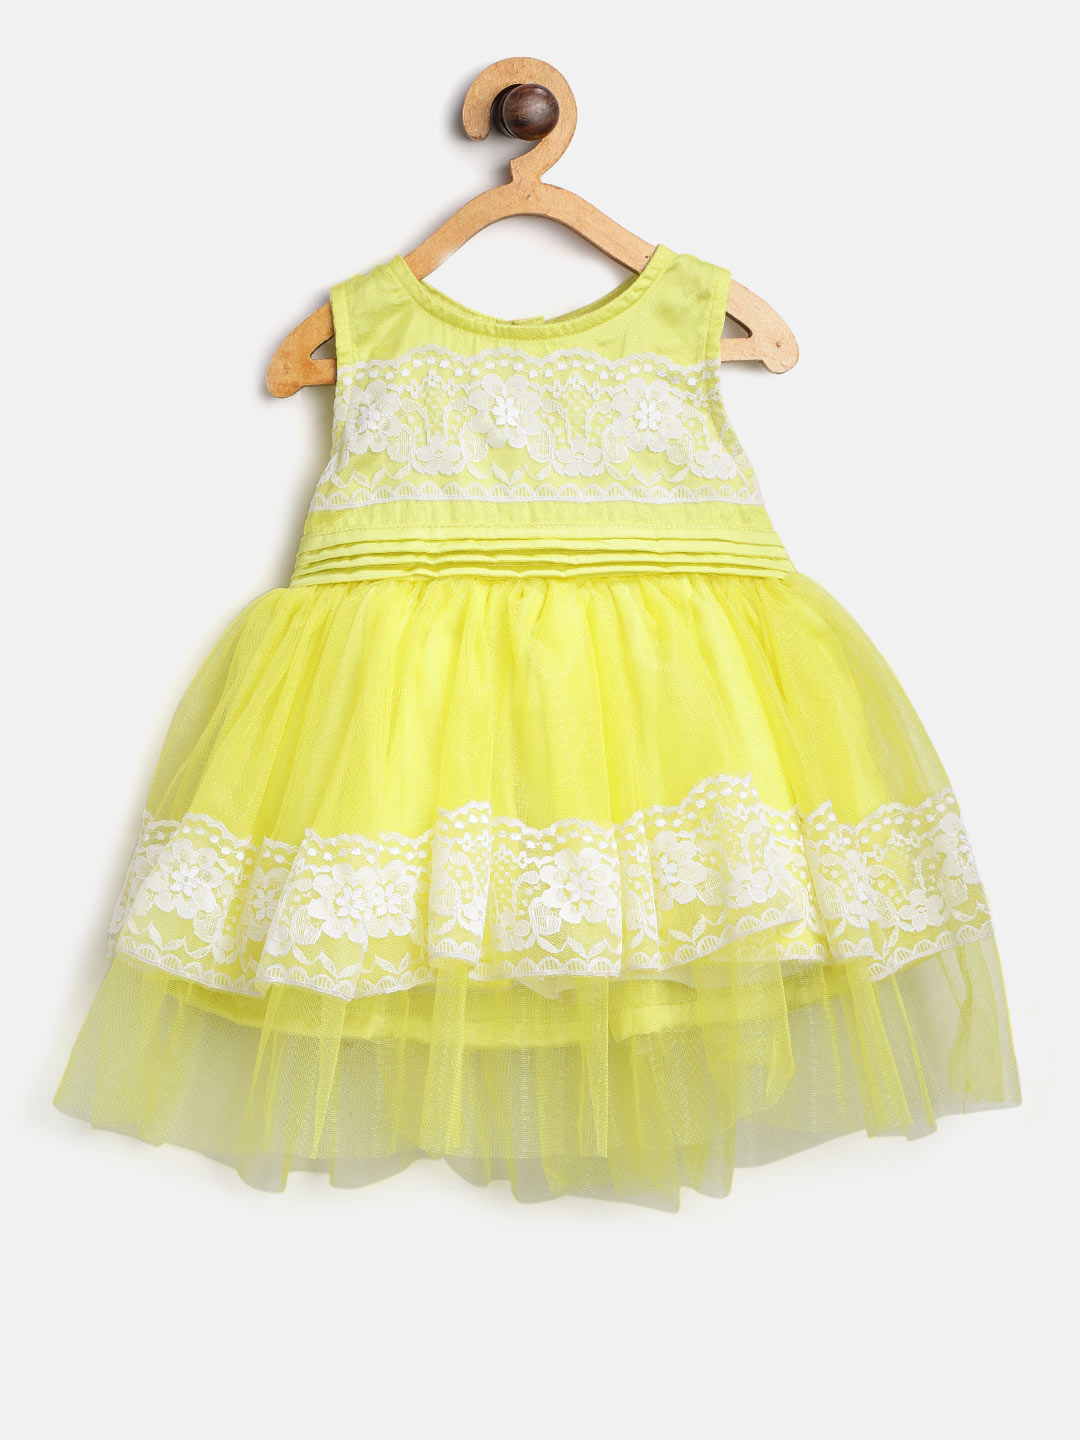 f5daa7bde13 Baby Dresses - Buy Dress for Babies Online at Best Price